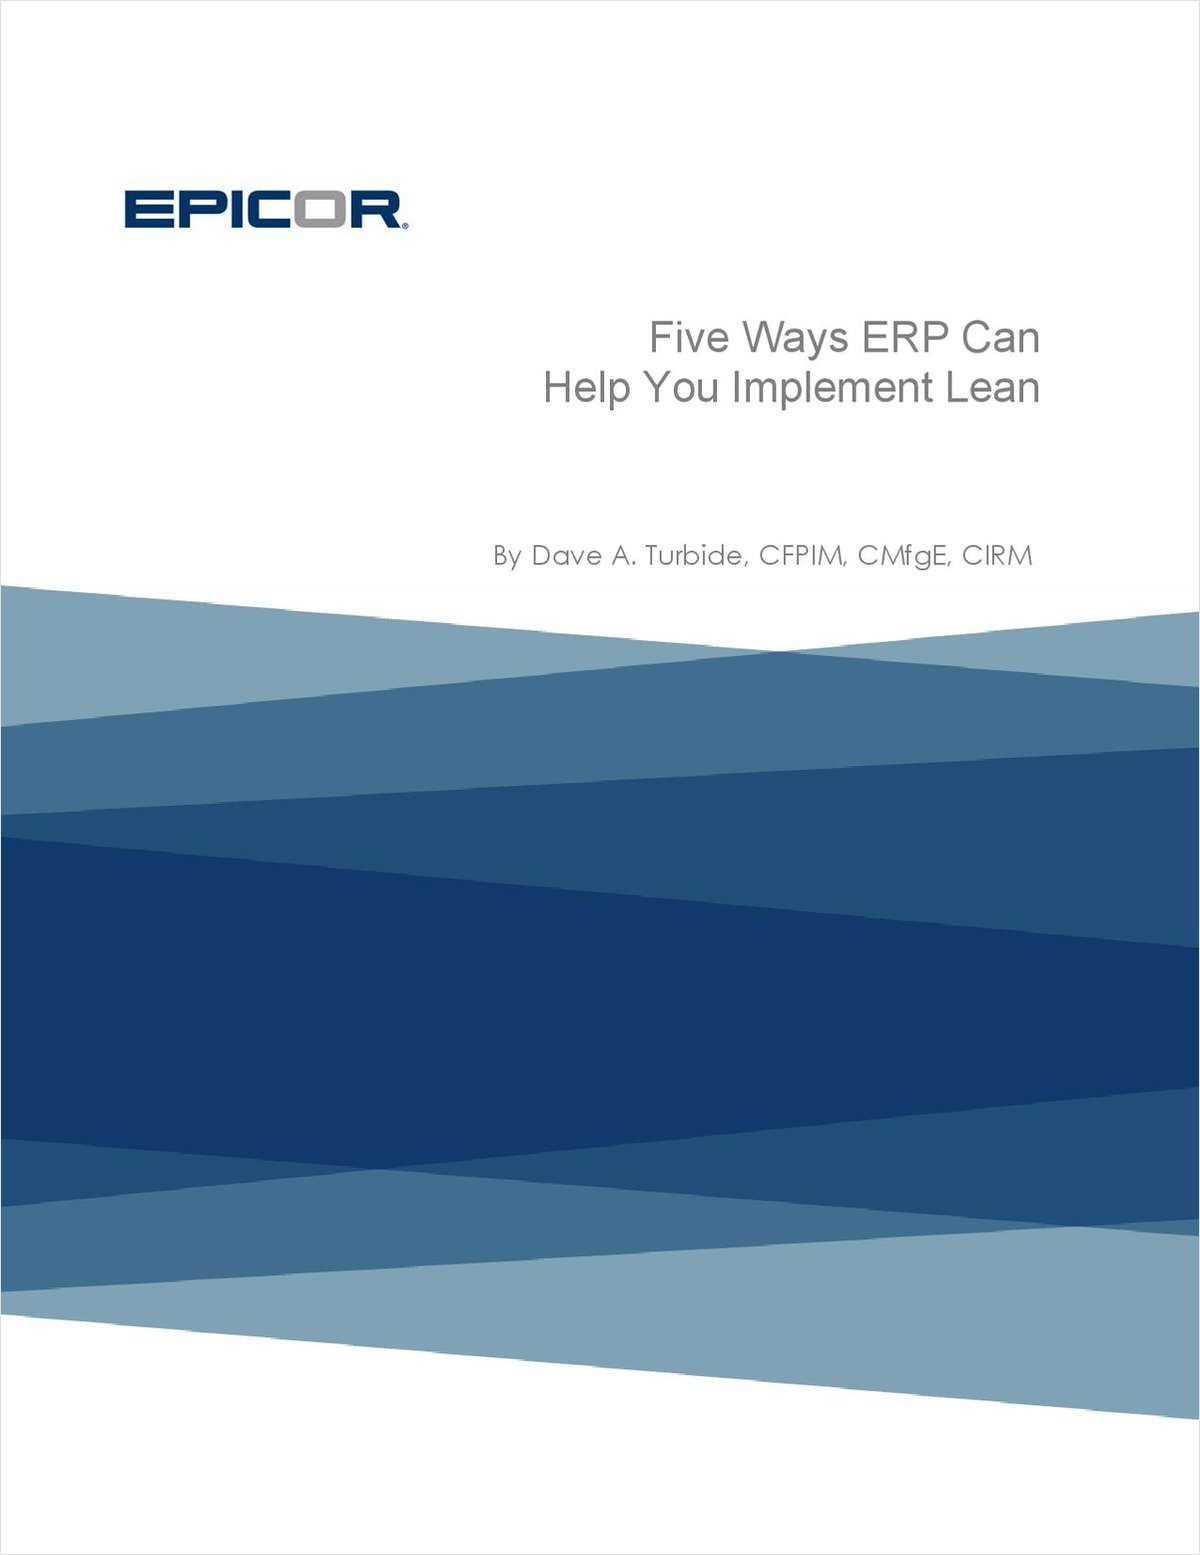 5 Ways ERP Can Help You Implement Lean